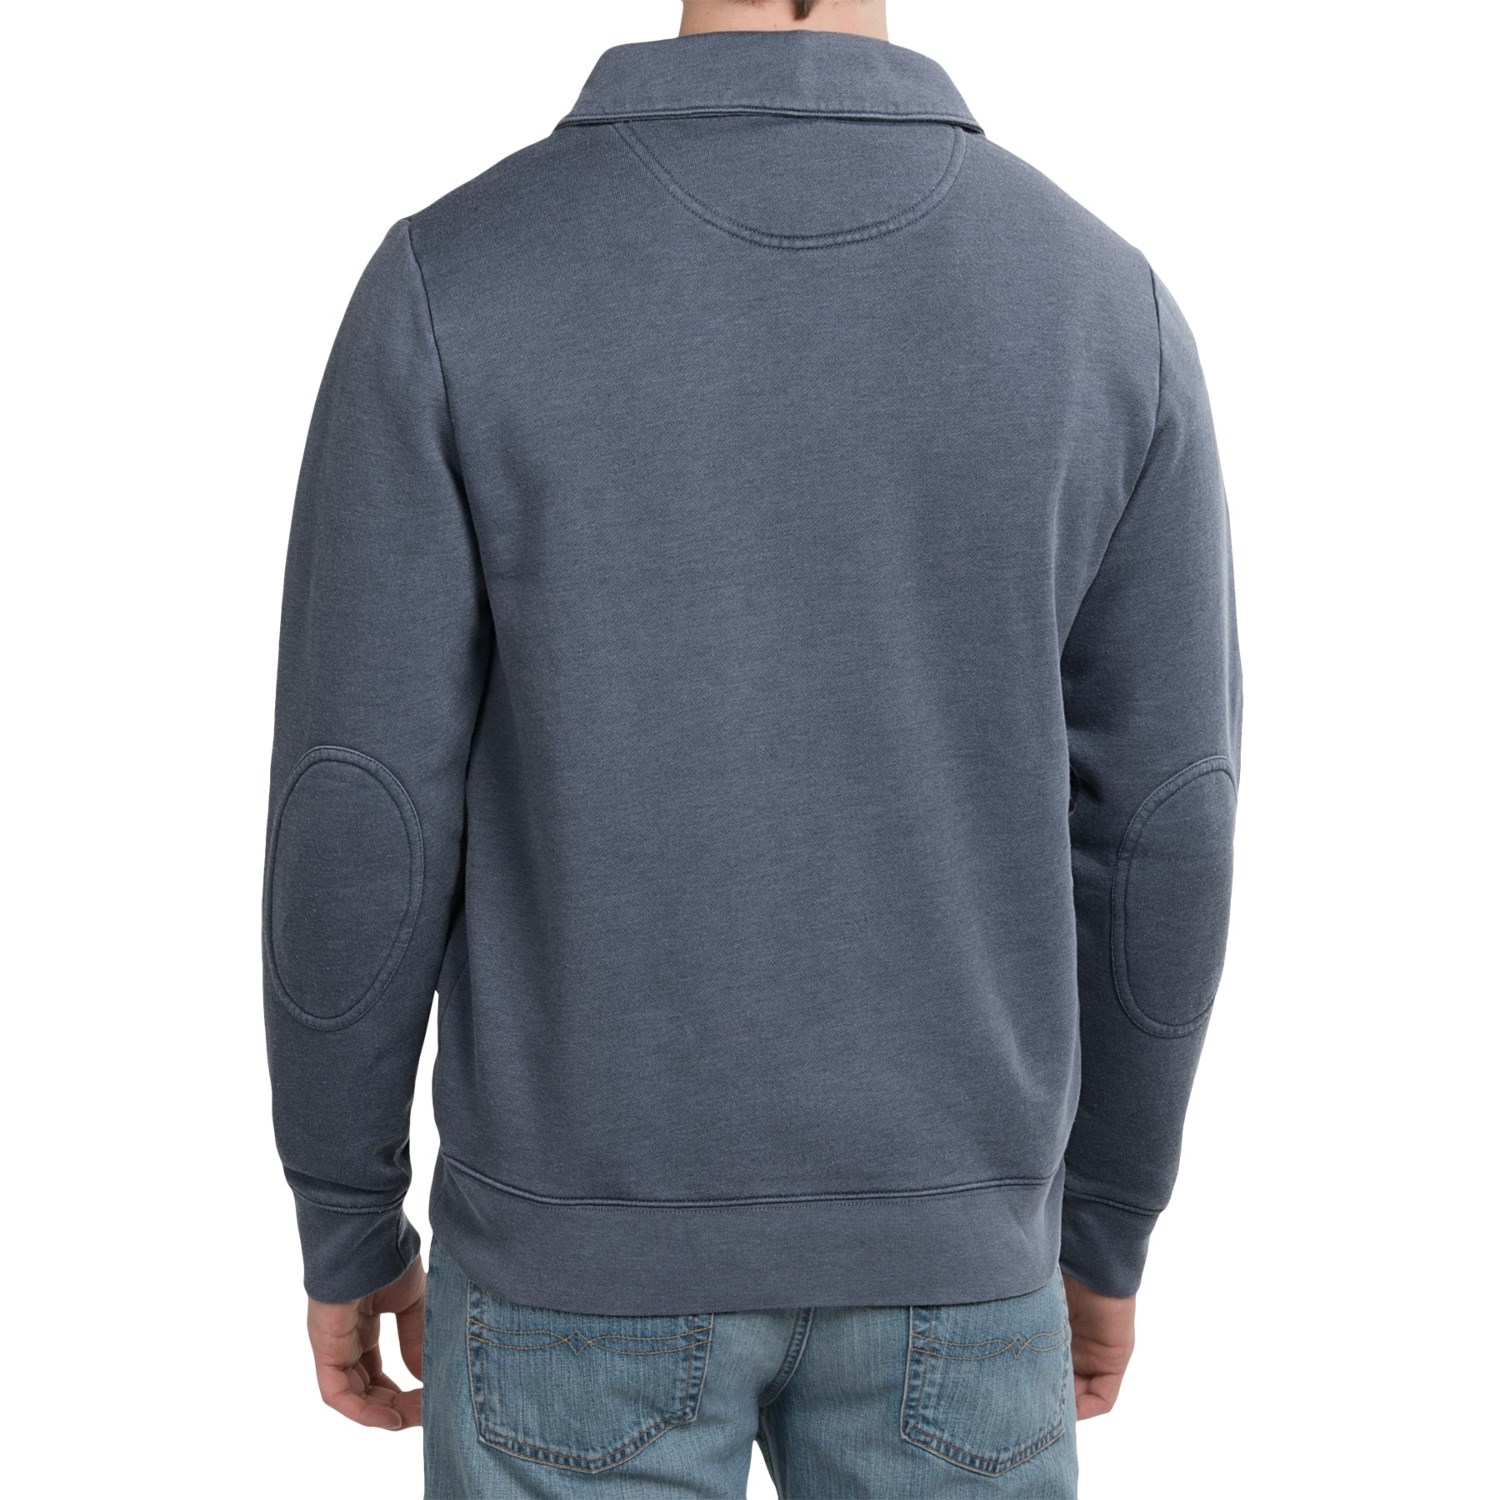 Dress in style with this Gildan Men's 1/4 Zip Sweatshirt. It's designed with long sleeves and cuffs to keep you warm in cold weather. This men's sweatshirt is made from a premium cotton blend with stretchy spandex for a comfortable fit/5(14).